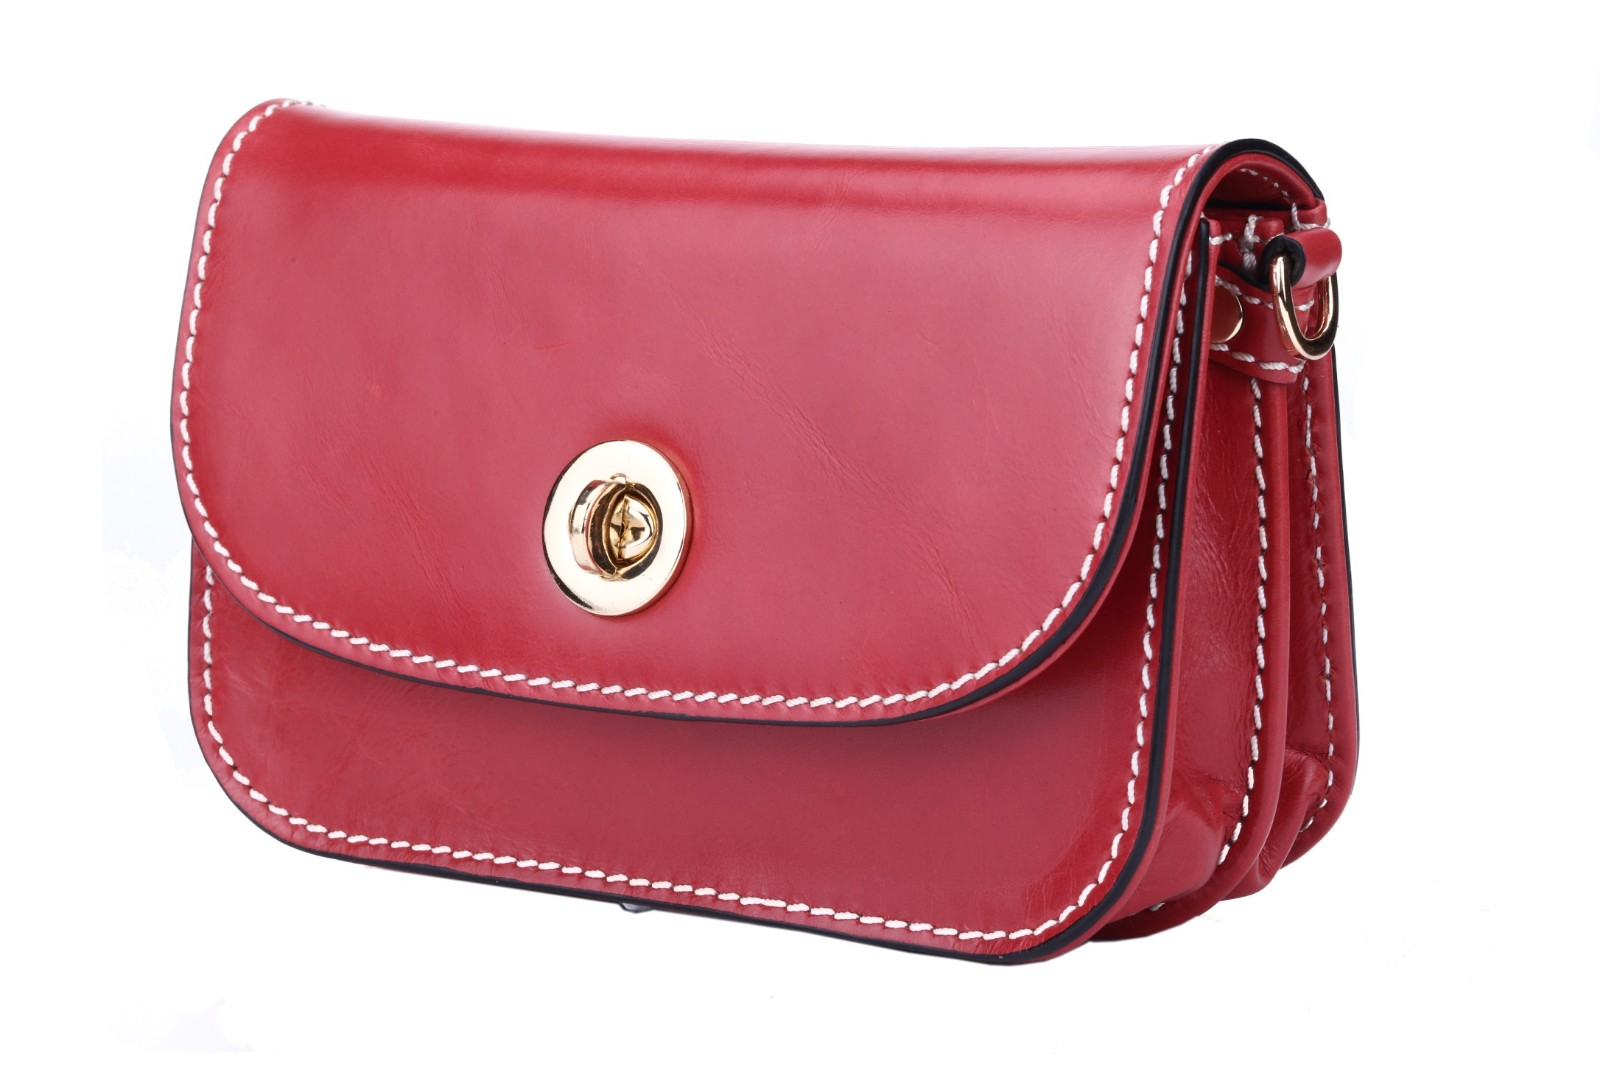 GF bags-Find Evening Clutch Bags | Gaofeng Bags Hand Clutch Purse-9